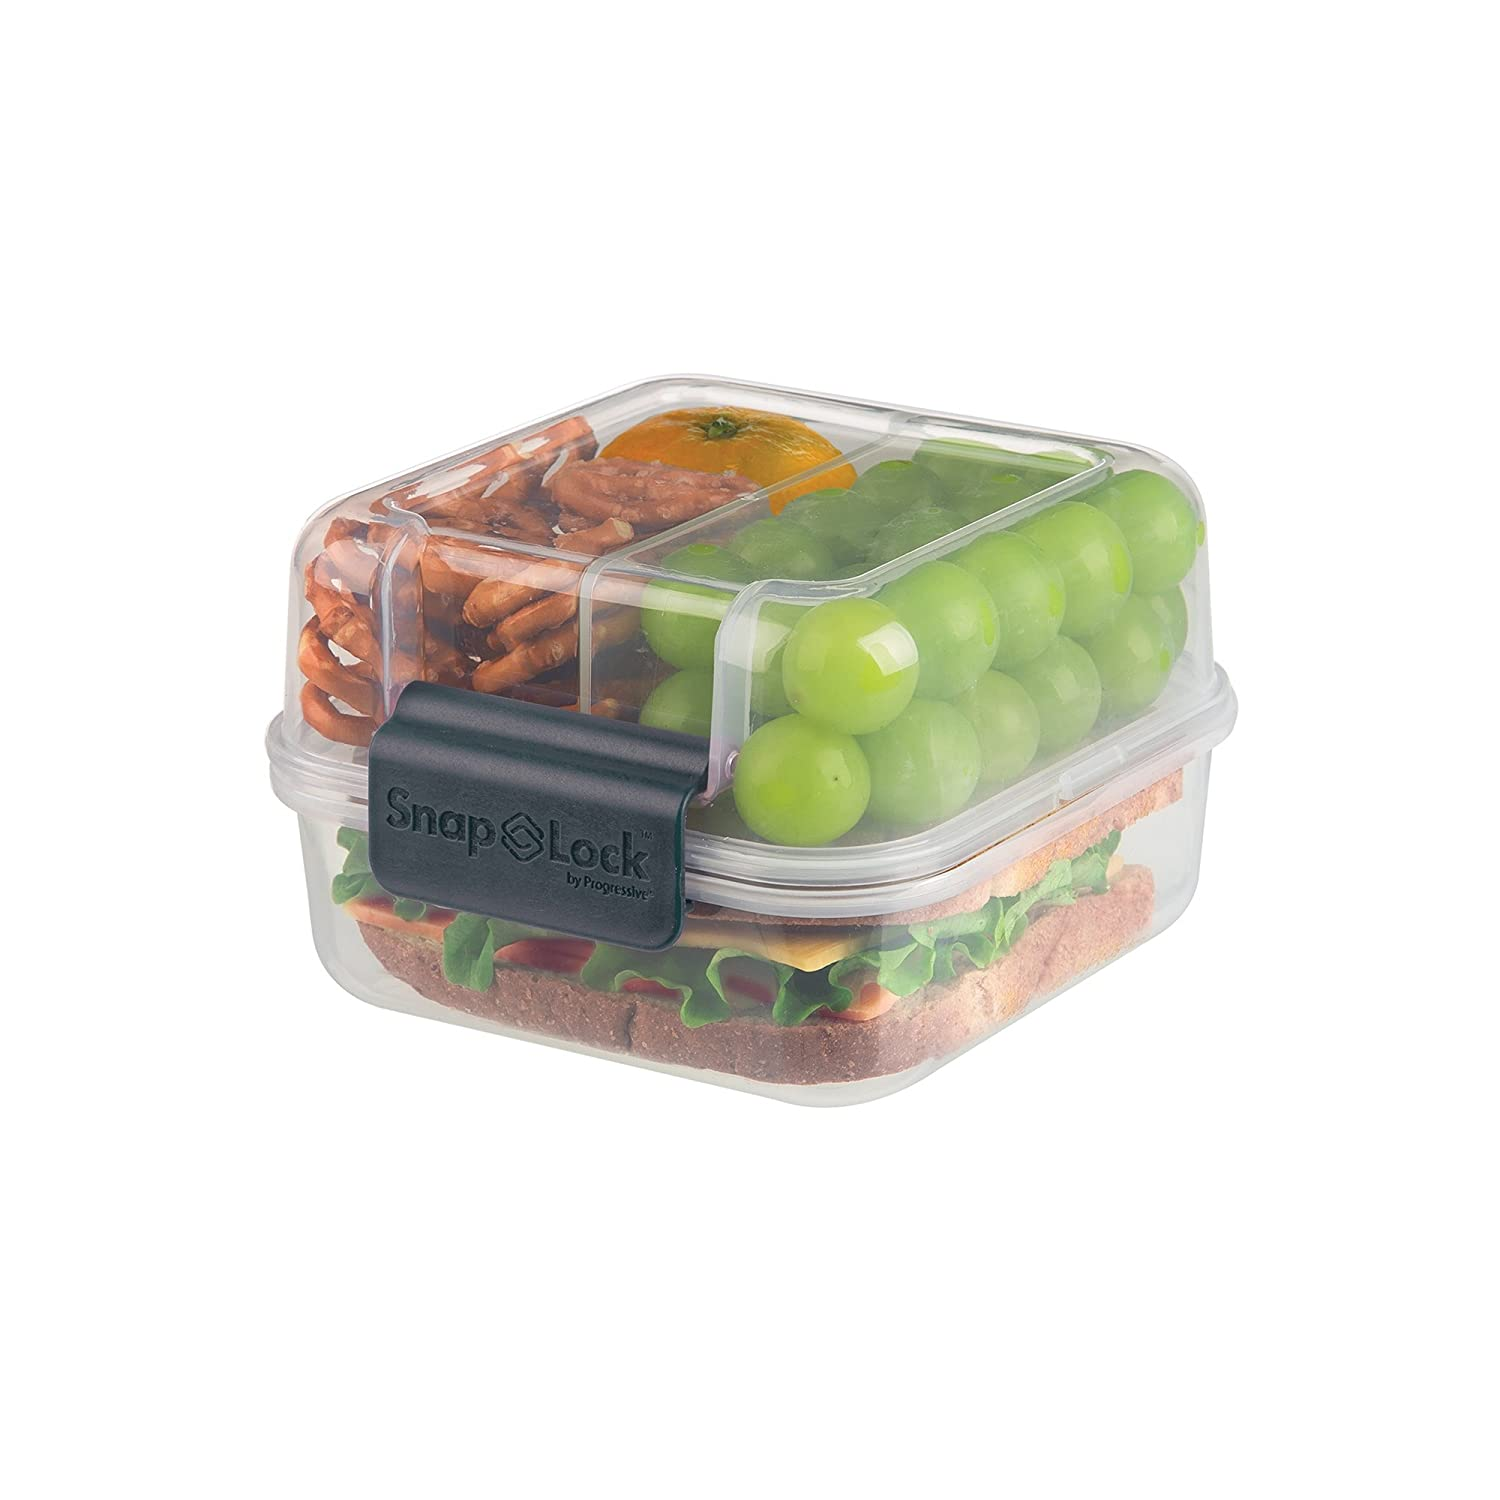 SnapLock by Progressive Lunch Cube To-Go Container - Gray, SNL-1005B Easy-To-Open, Silicone Seal, Snap-Off Lid, Stackable, BPA FREE